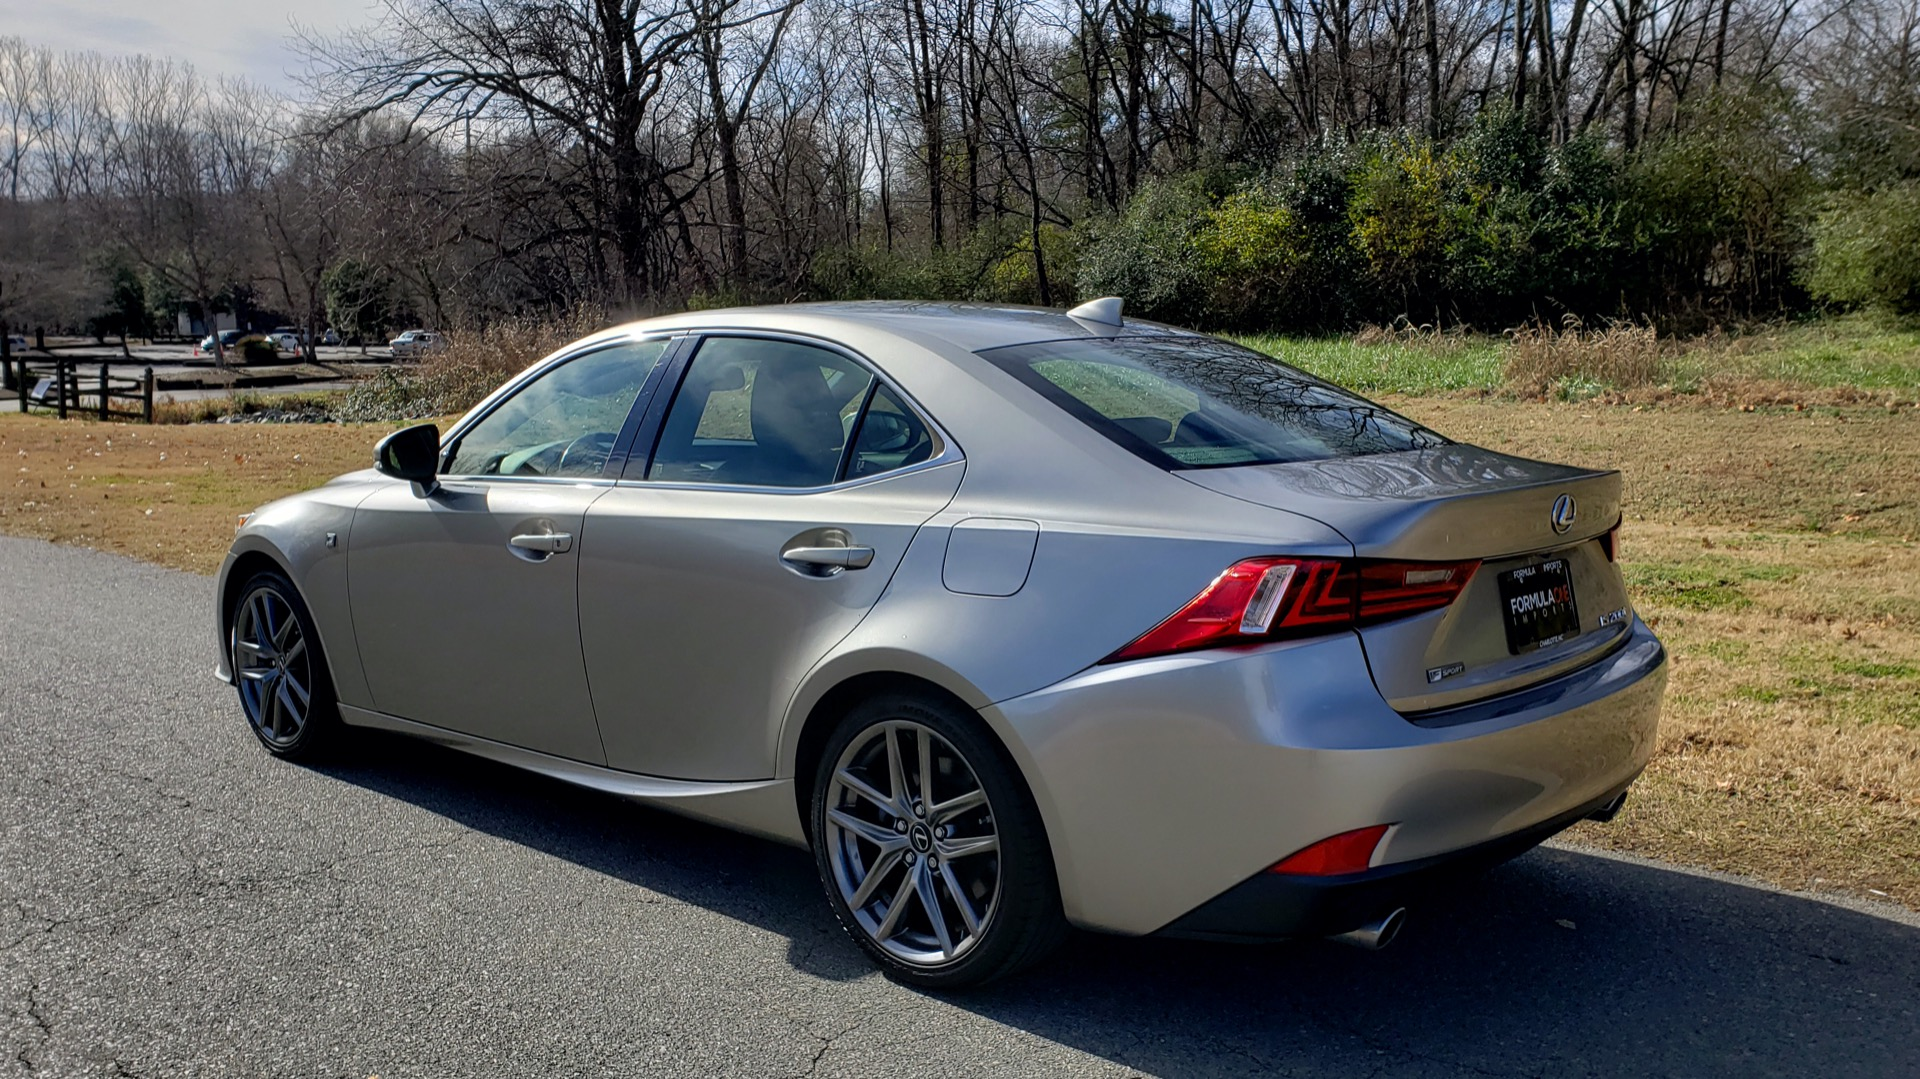 Used 2016 Lexus IS 200t F-SPORT / SUNROOF / NAV / BSM / DYNAMIC RADAR CRUISE for sale Sold at Formula Imports in Charlotte NC 28227 3